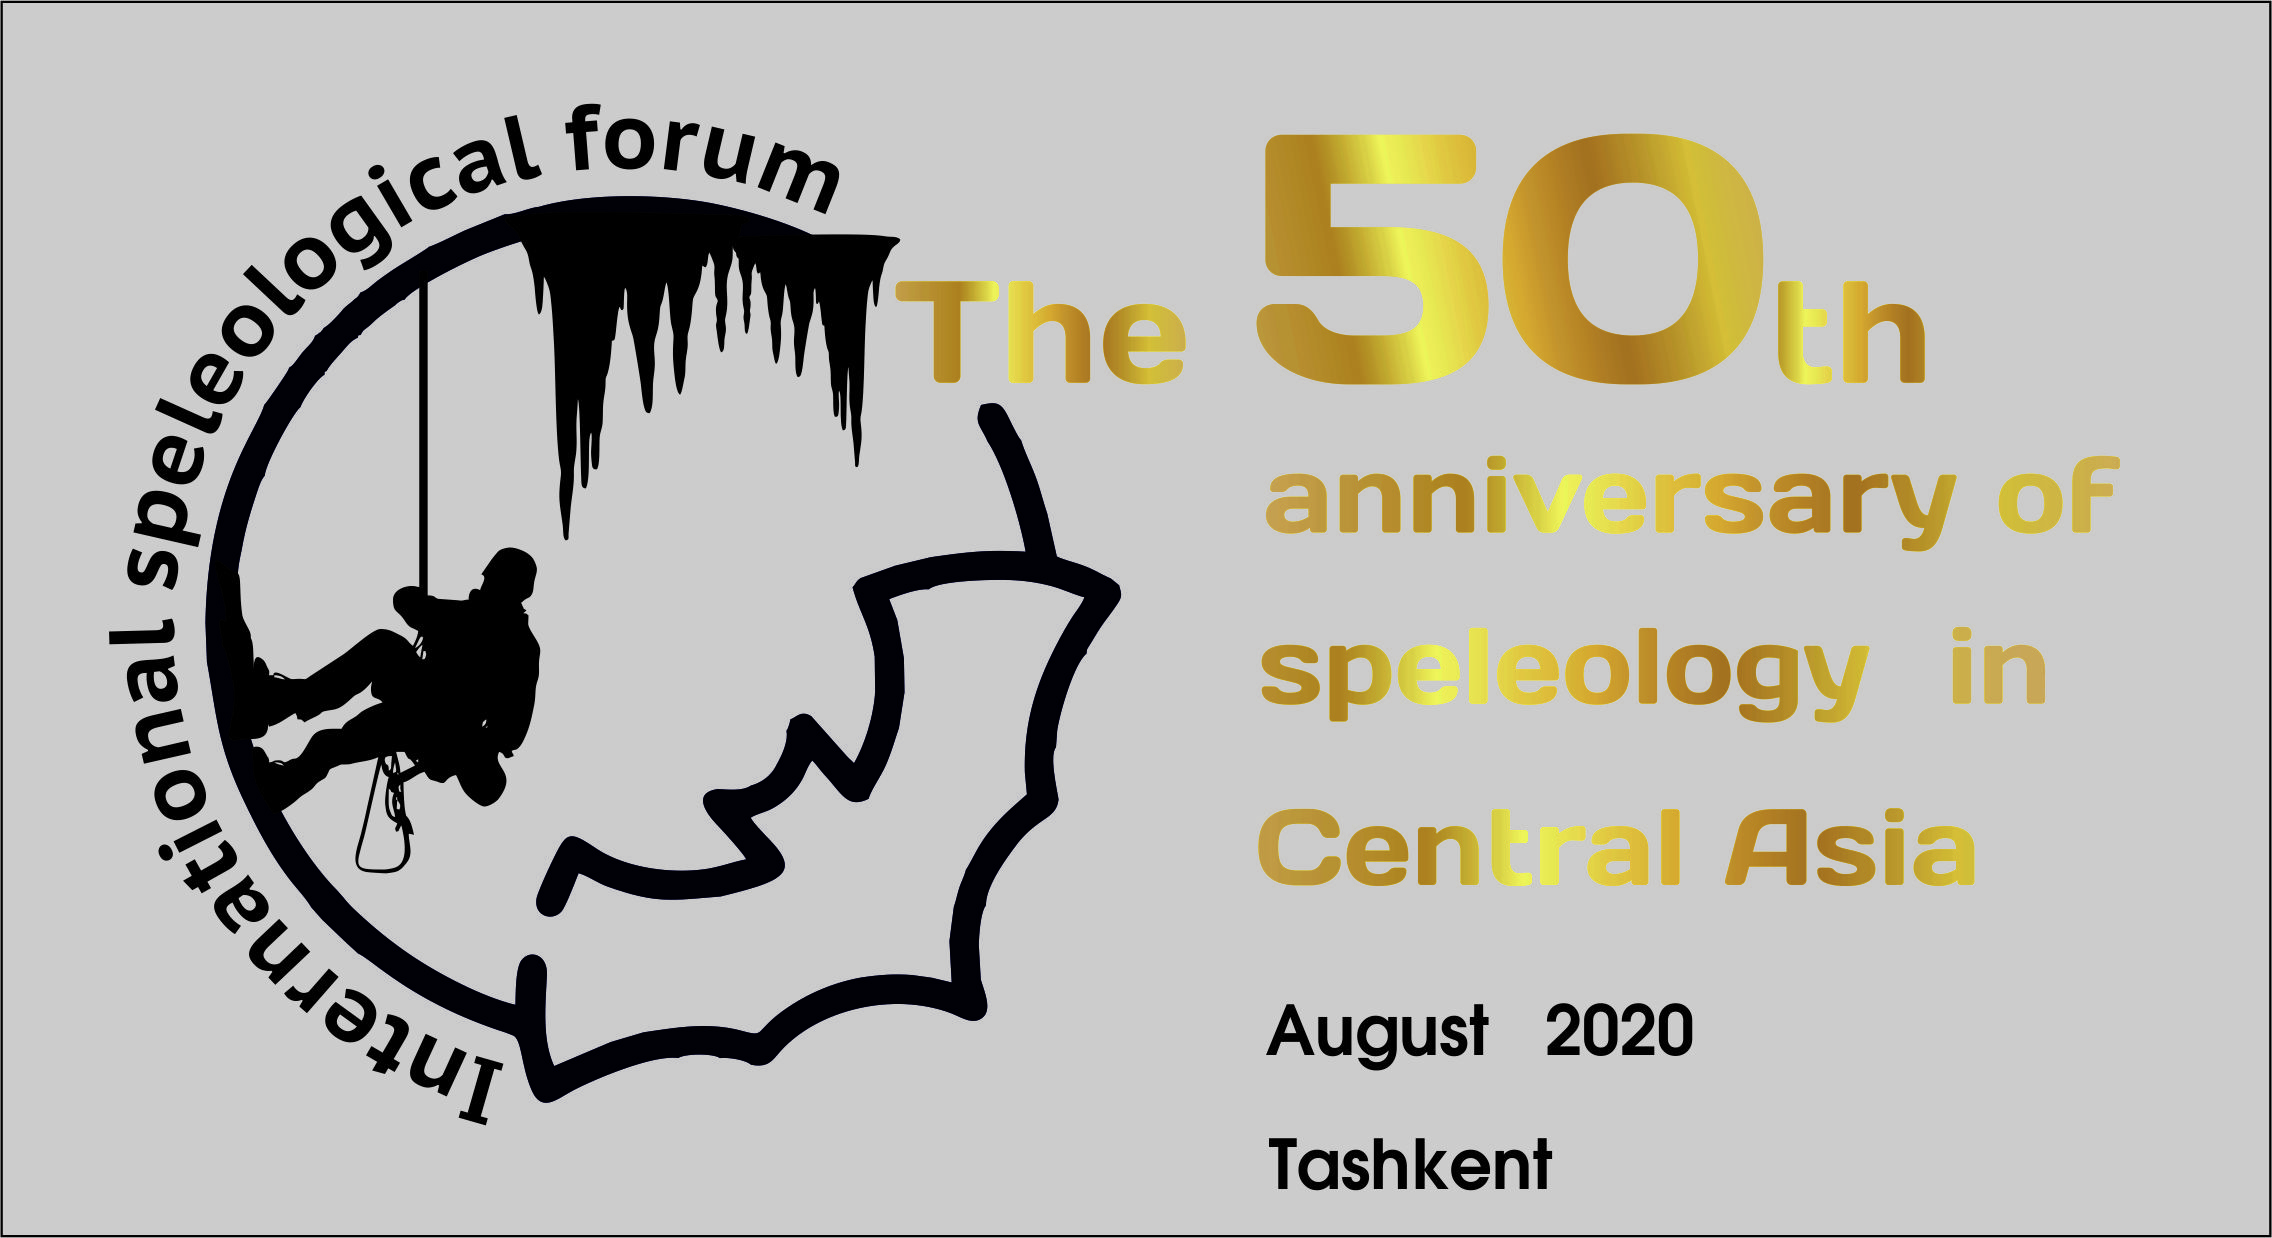 First Circular of Speleo Forum 2020, Tashkent, 21-24.08.2020